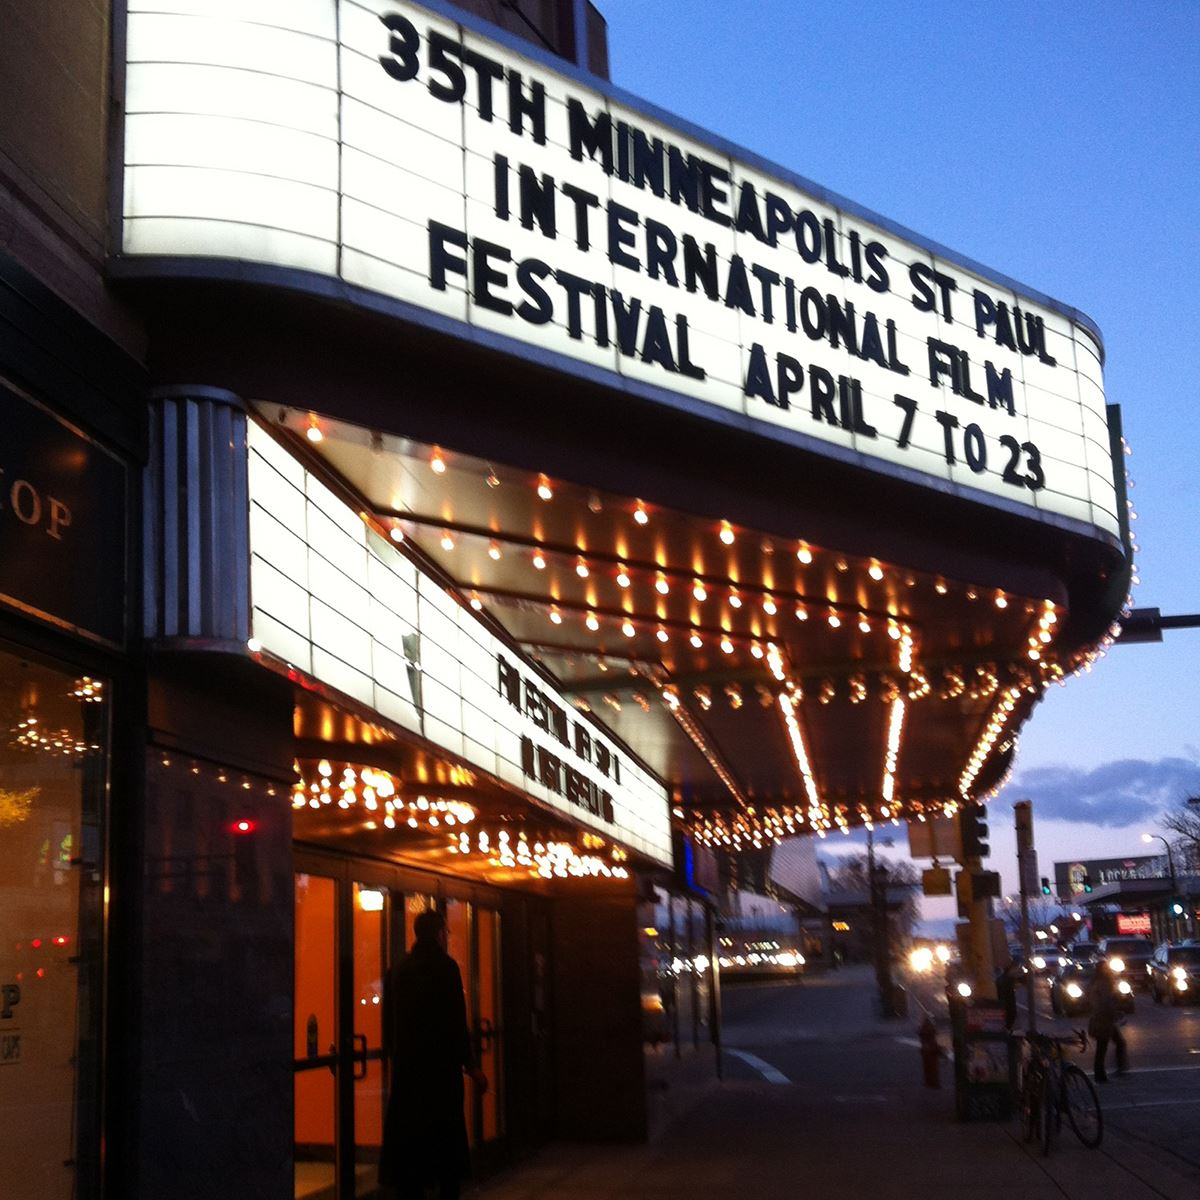 Image Credit: The Film Society of Minneapolis-St. Paul